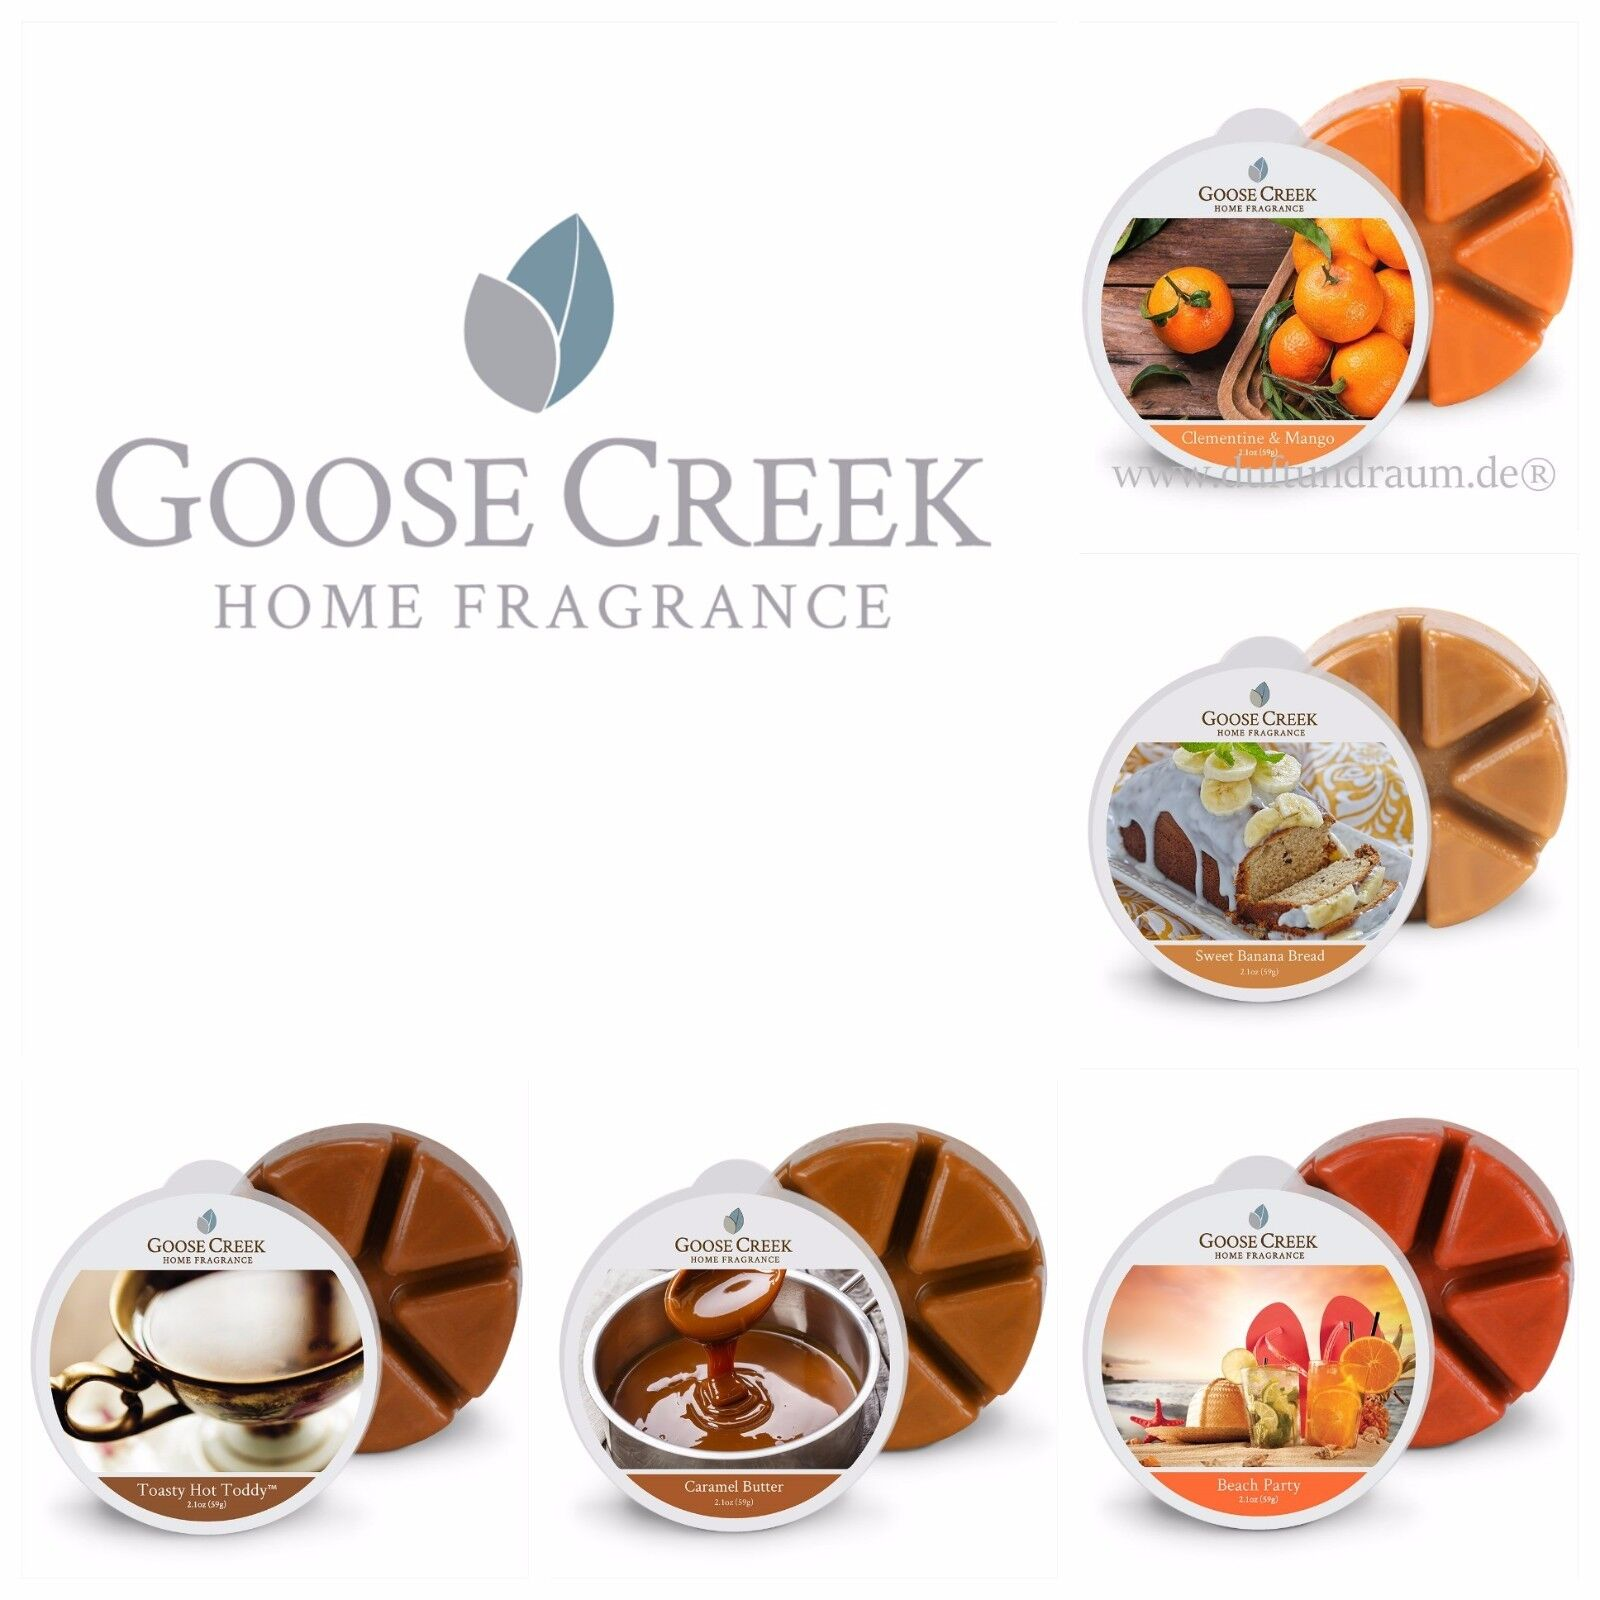 Goose Creek Wax Melts, 40 Scents to Choose From, Save 10% Wh